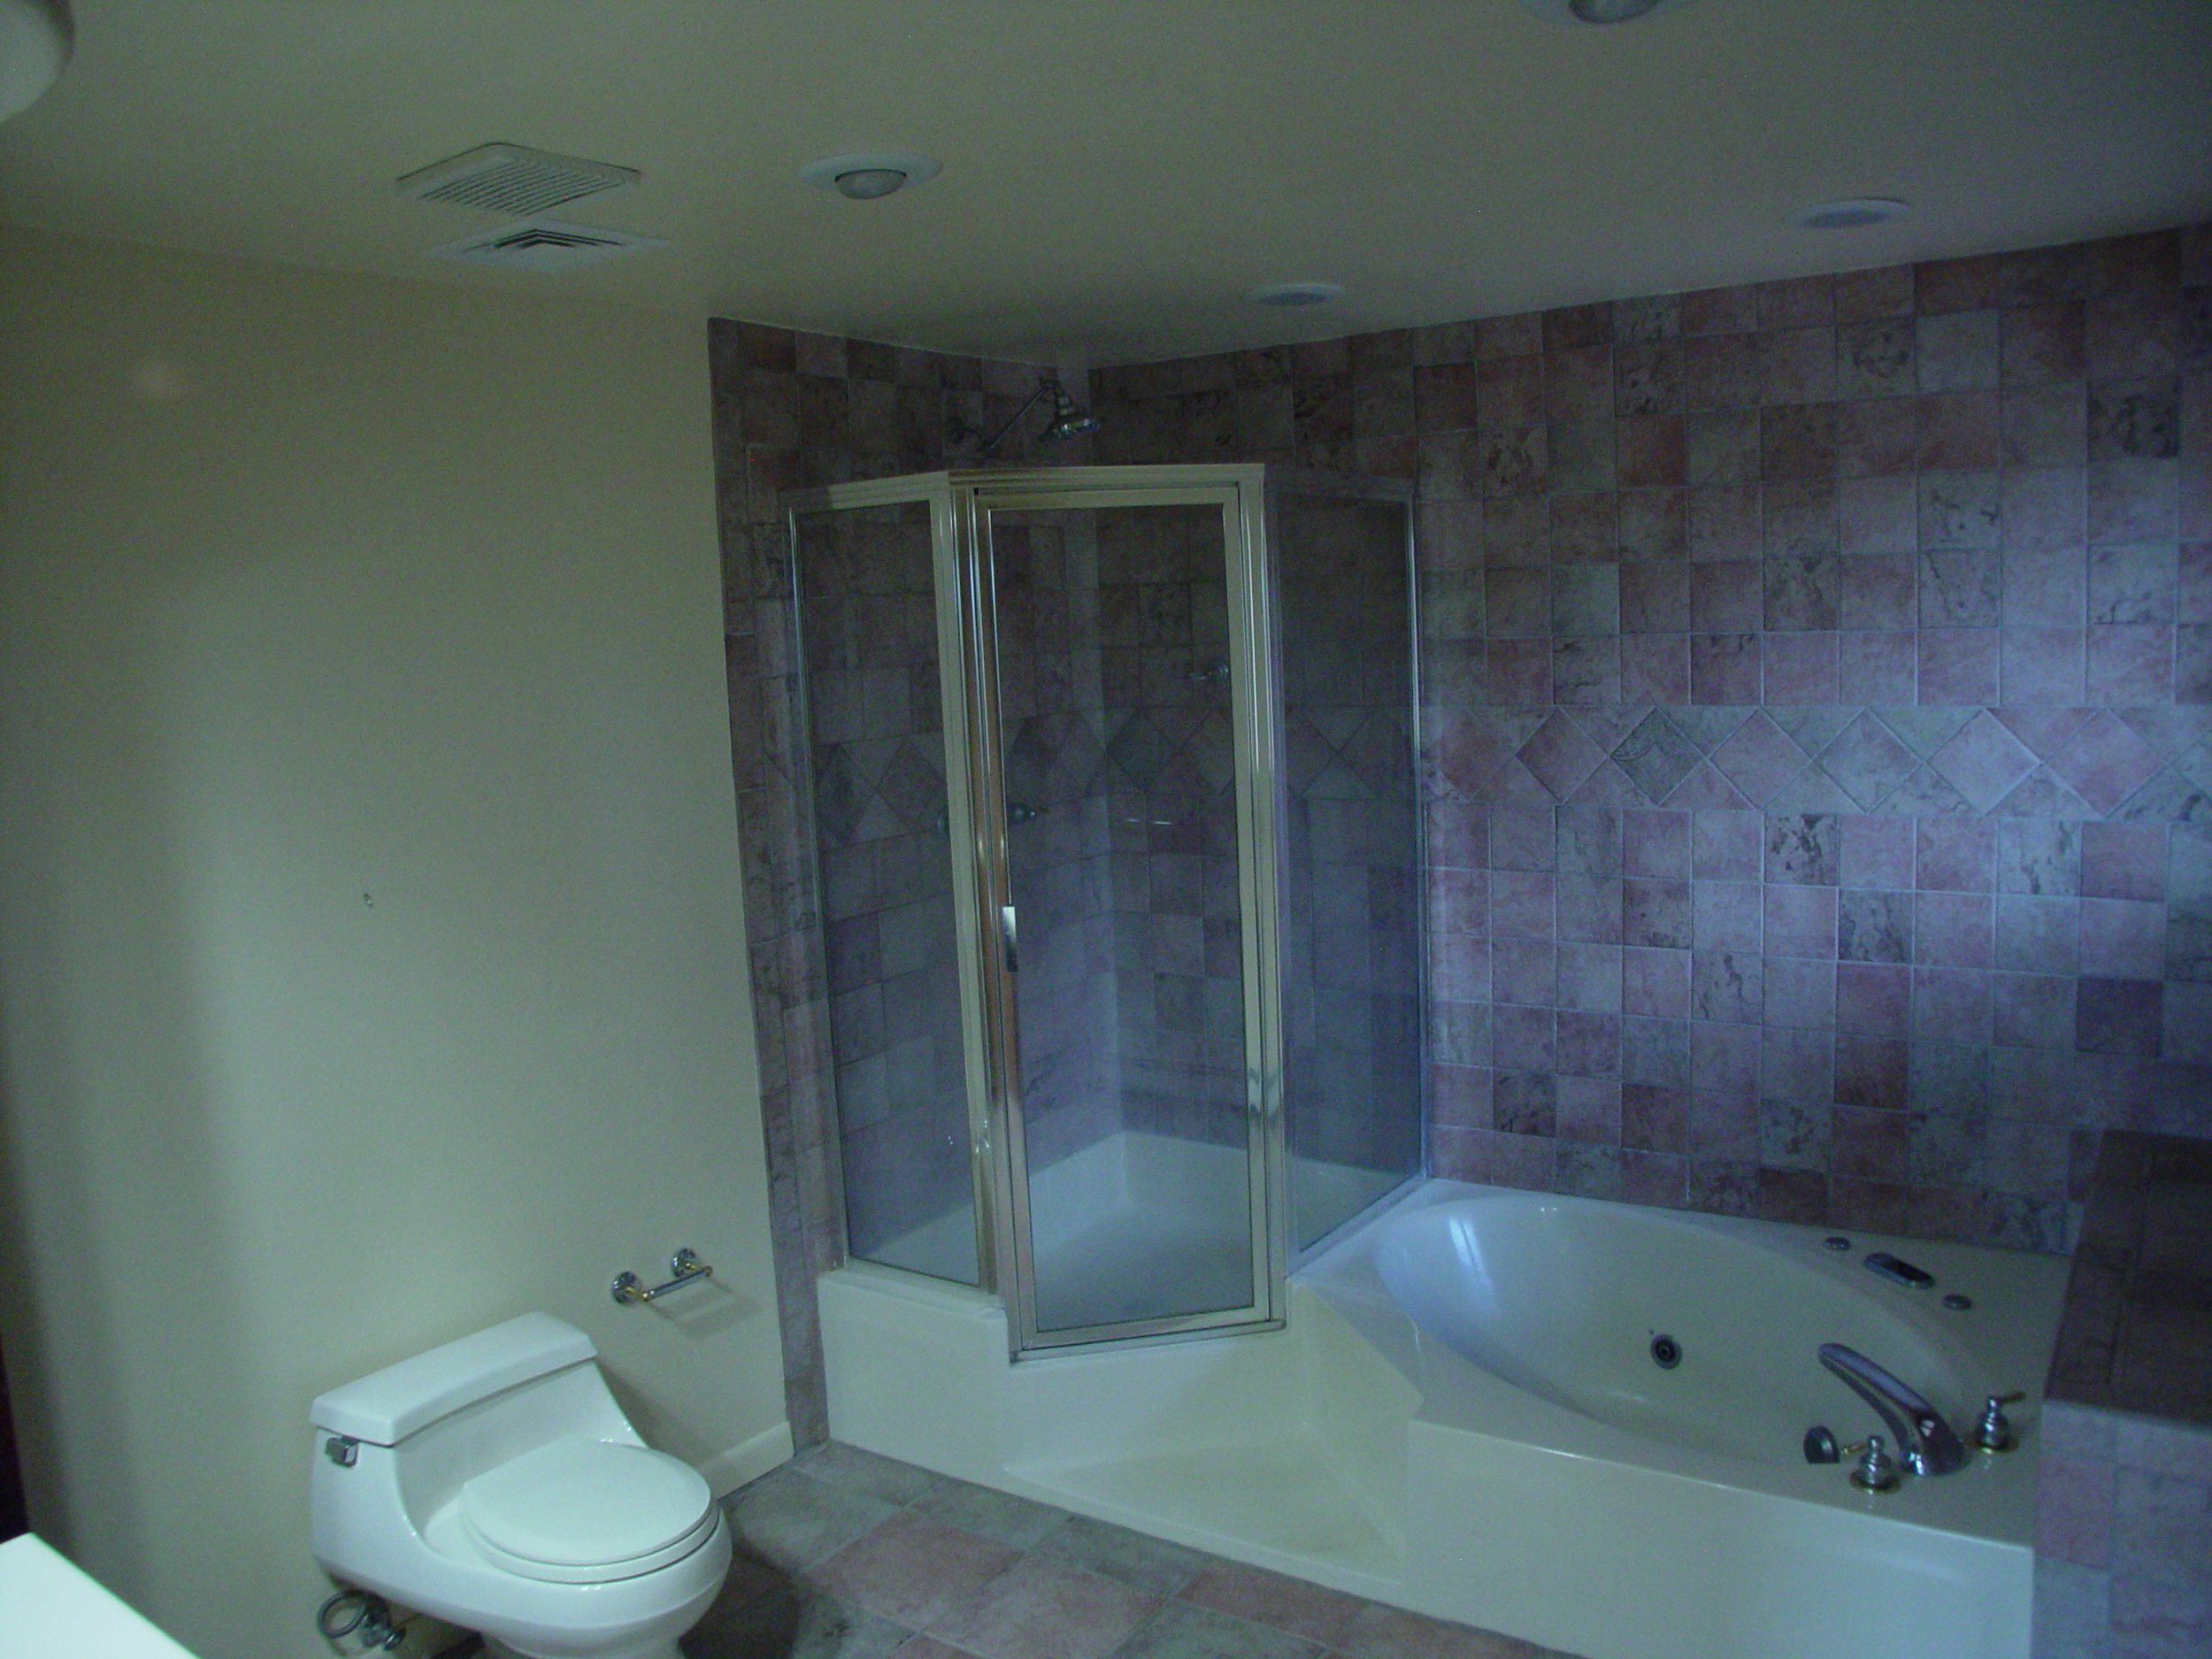 A client's bathroom before a barrier-free bathroom remodel.